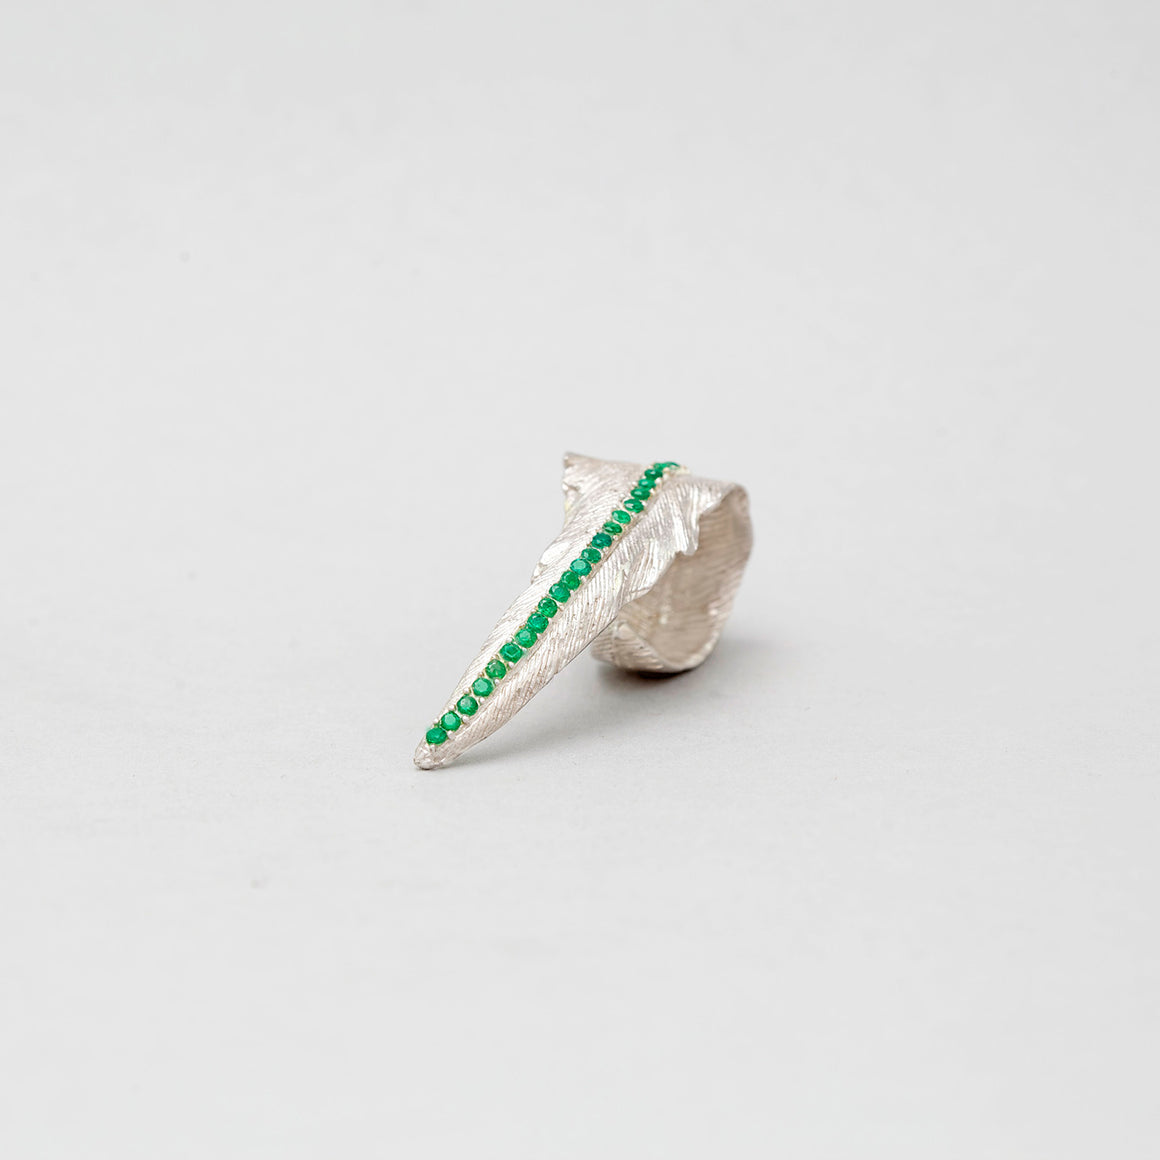 STERLING SILVER FLY RING WITH COLOMBIAN EMERALD